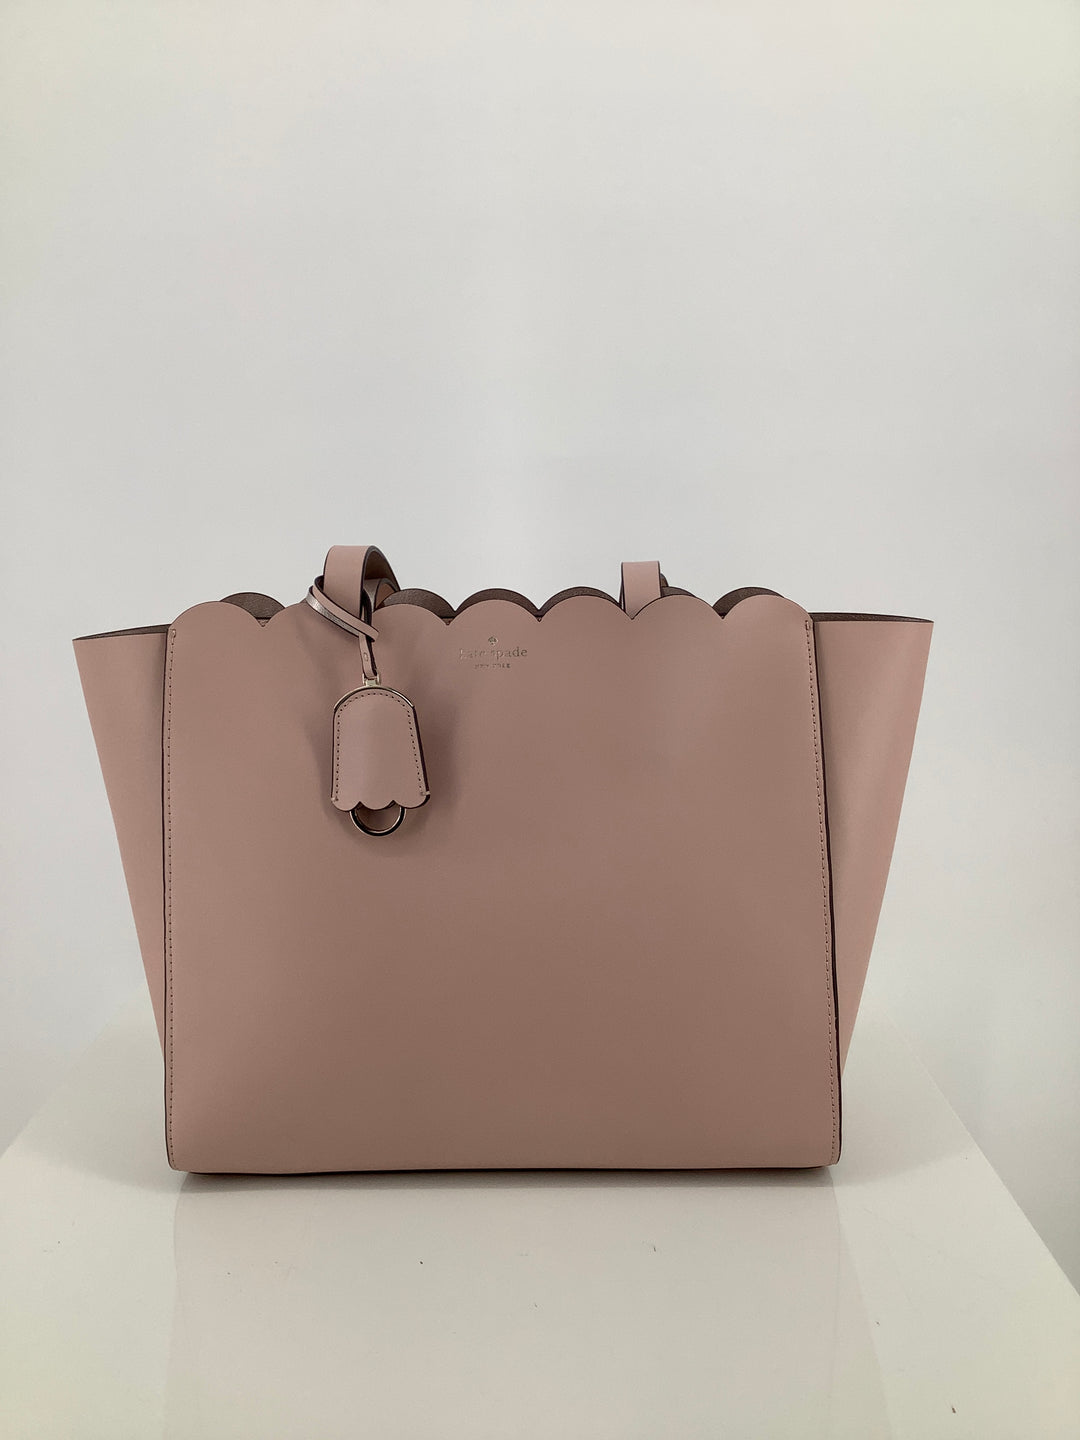 Primary Photo - BRAND: KATE SPADE , STYLE: HANDBAG DESIGNER , COLOR: PINK , SIZE: LARGE , SKU: 105-4940-4698